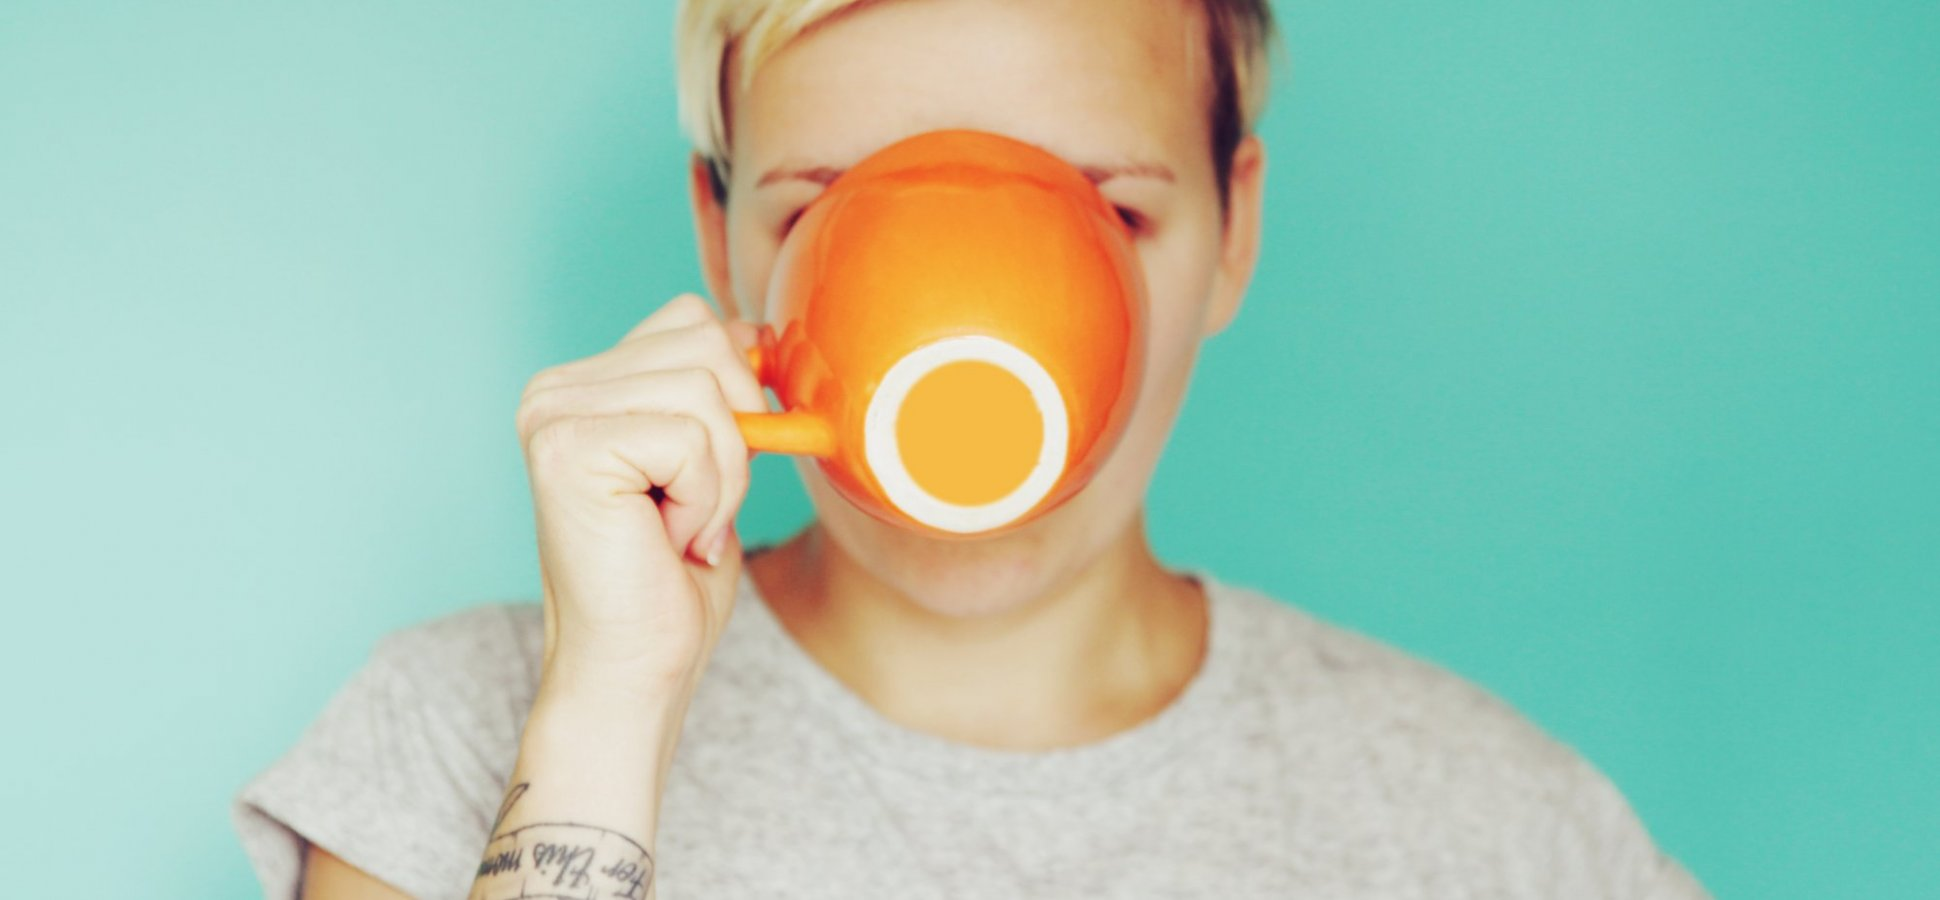 9 Common Coffee Mistakes and How to Fix Them